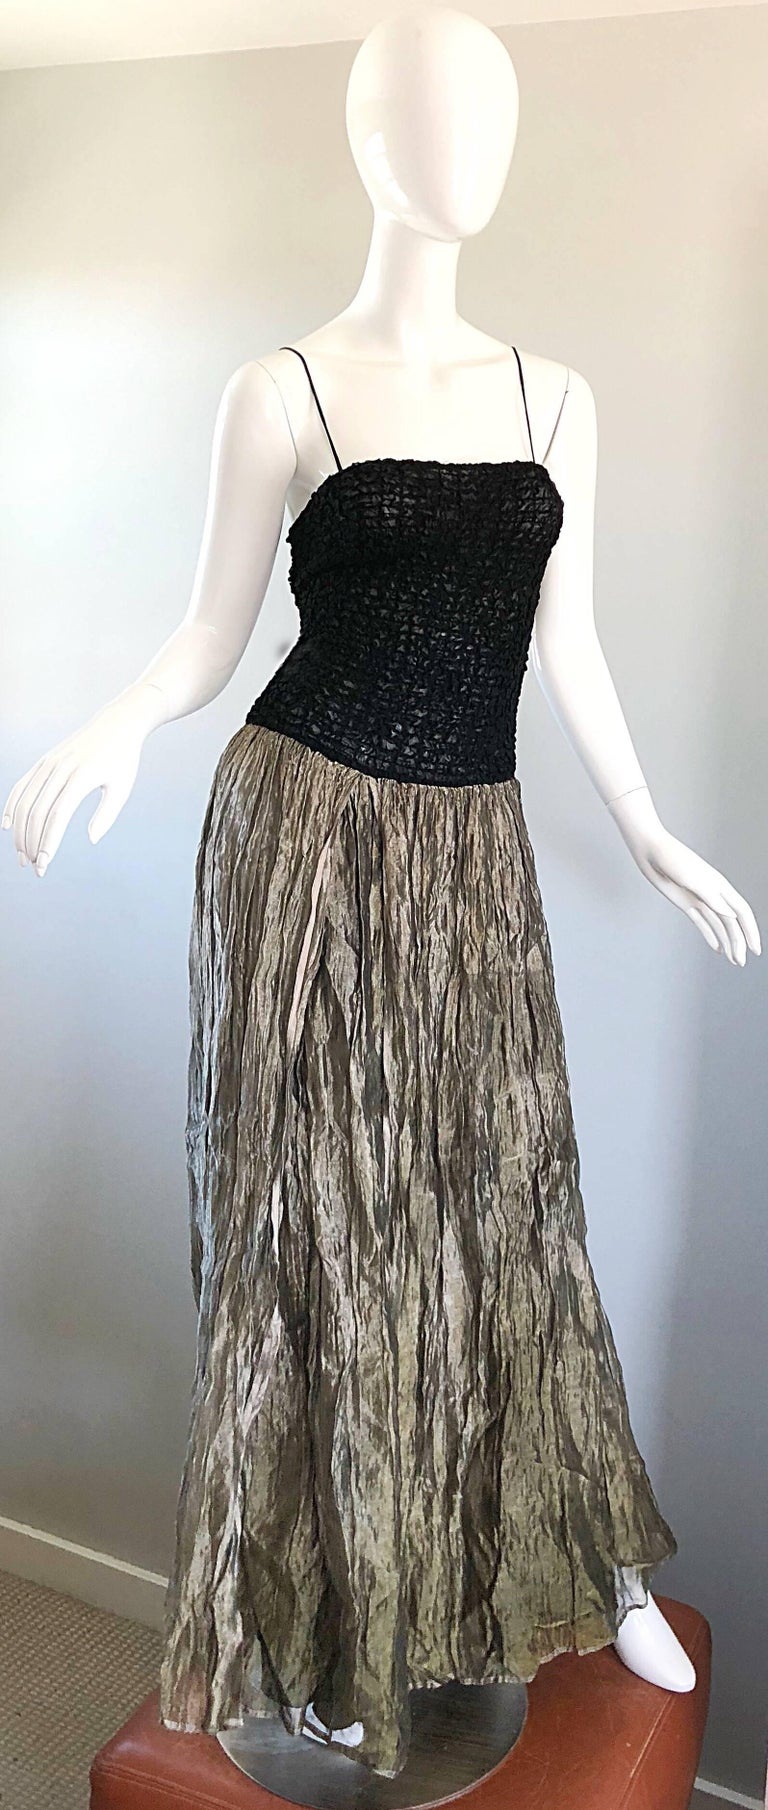 Vintage Morgane Le Fay 1990s Black + Gold Metallic Ombre 90s Evening Gown Dress 1